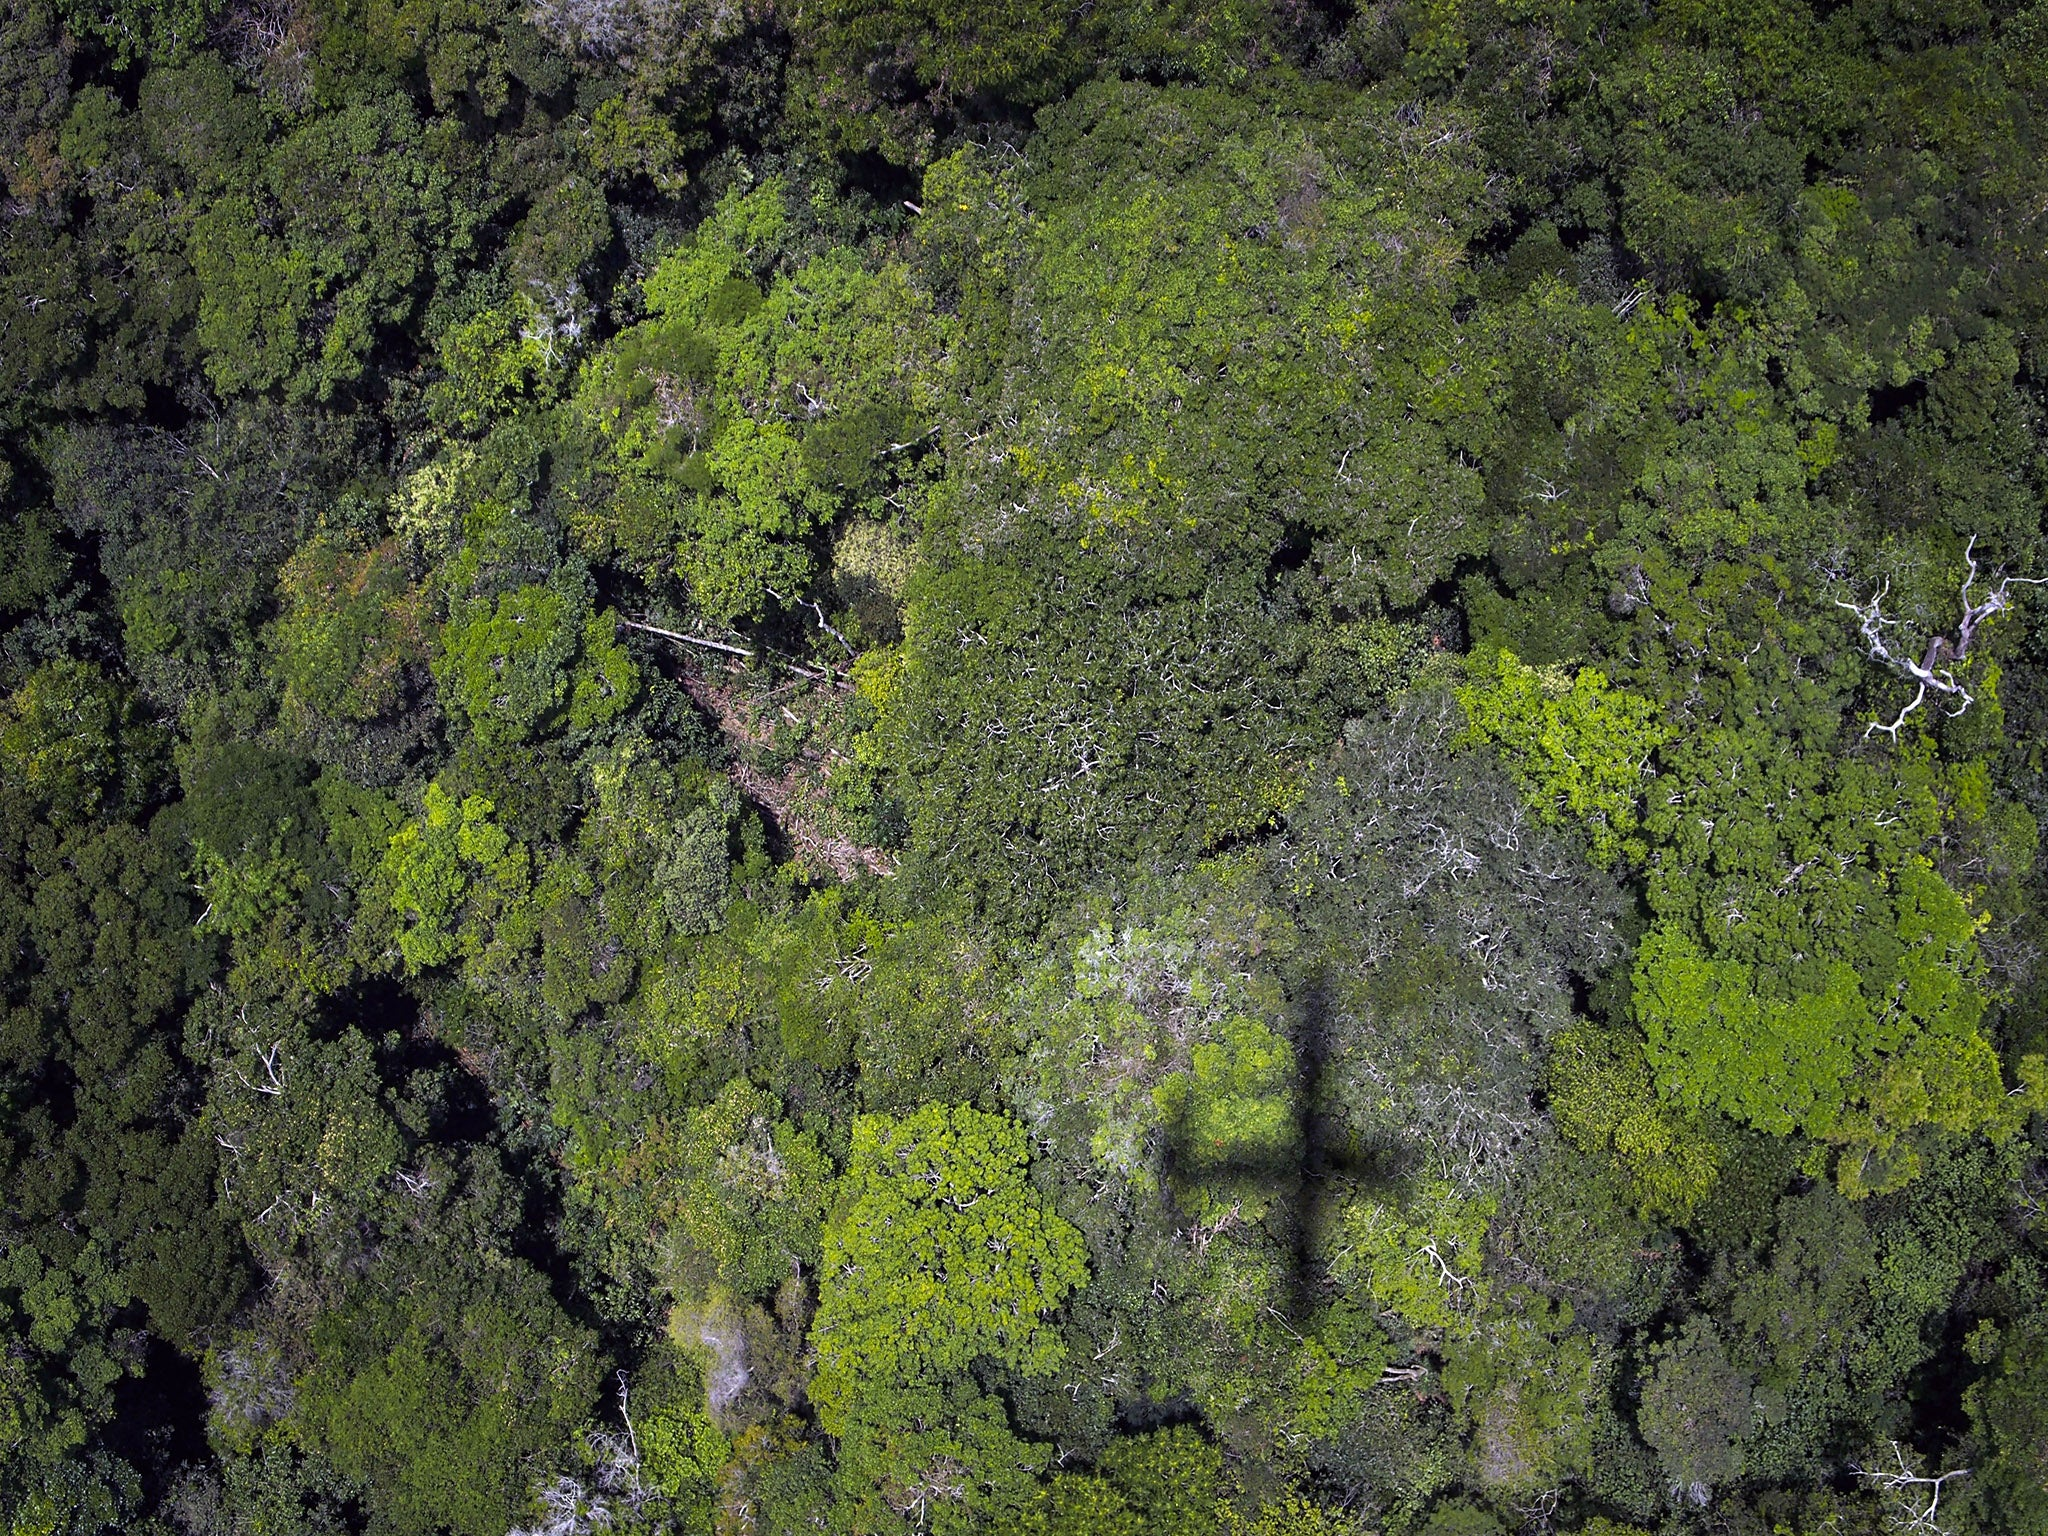 Amazon rainforest losing capacity to fight climate change as trees die